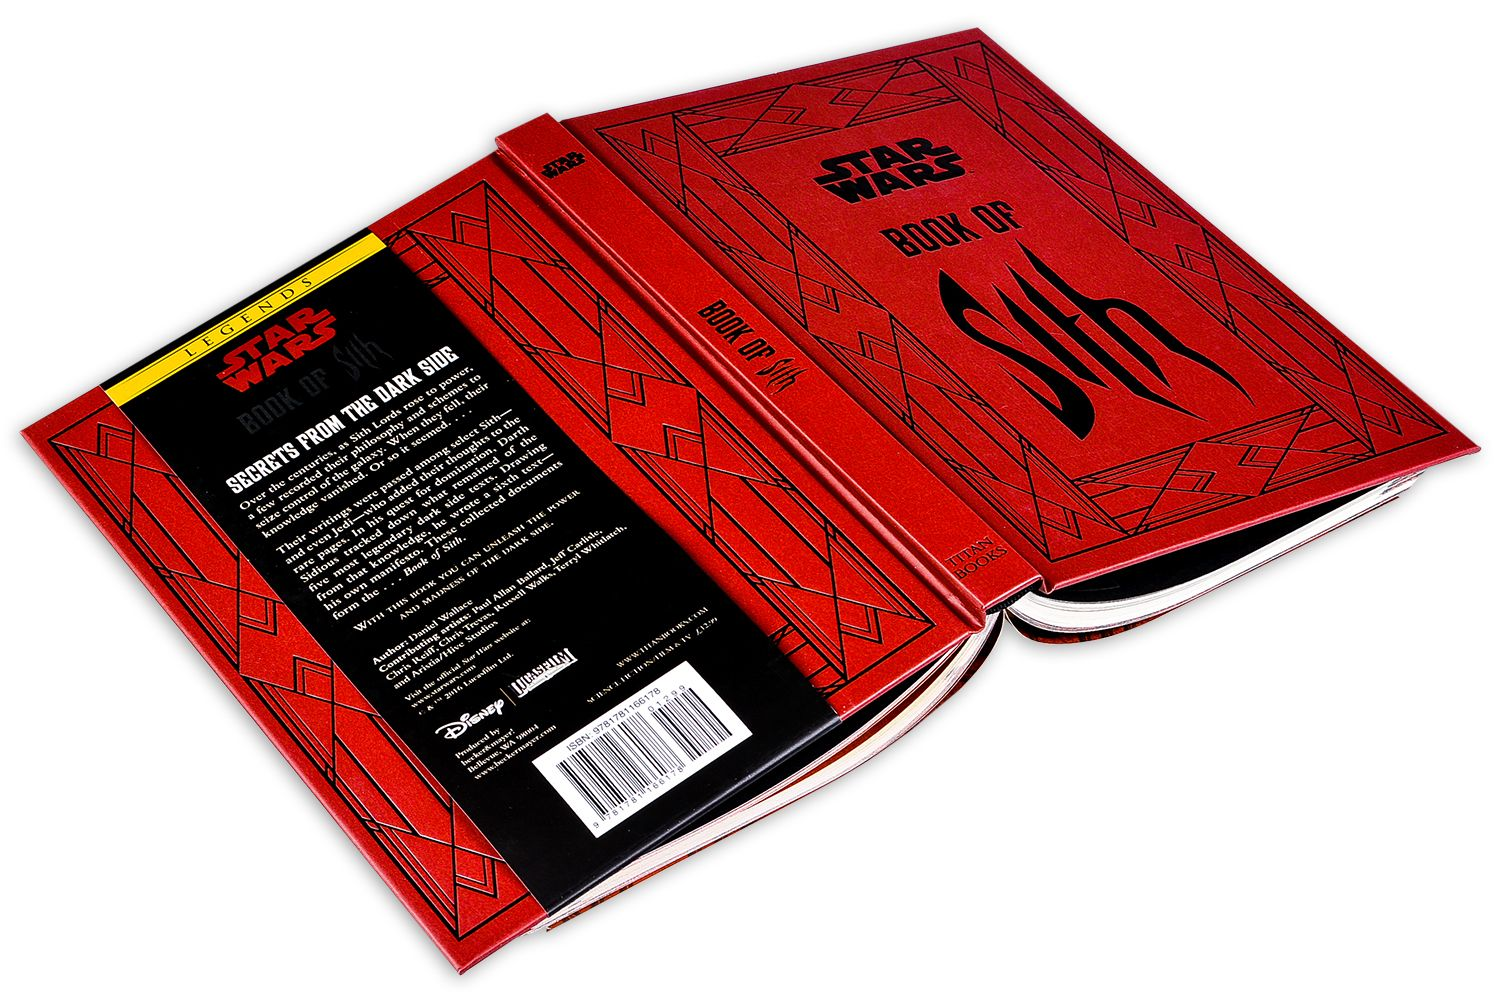 Star Wars. Book of Sith: Secrets from the Dark Side - 2